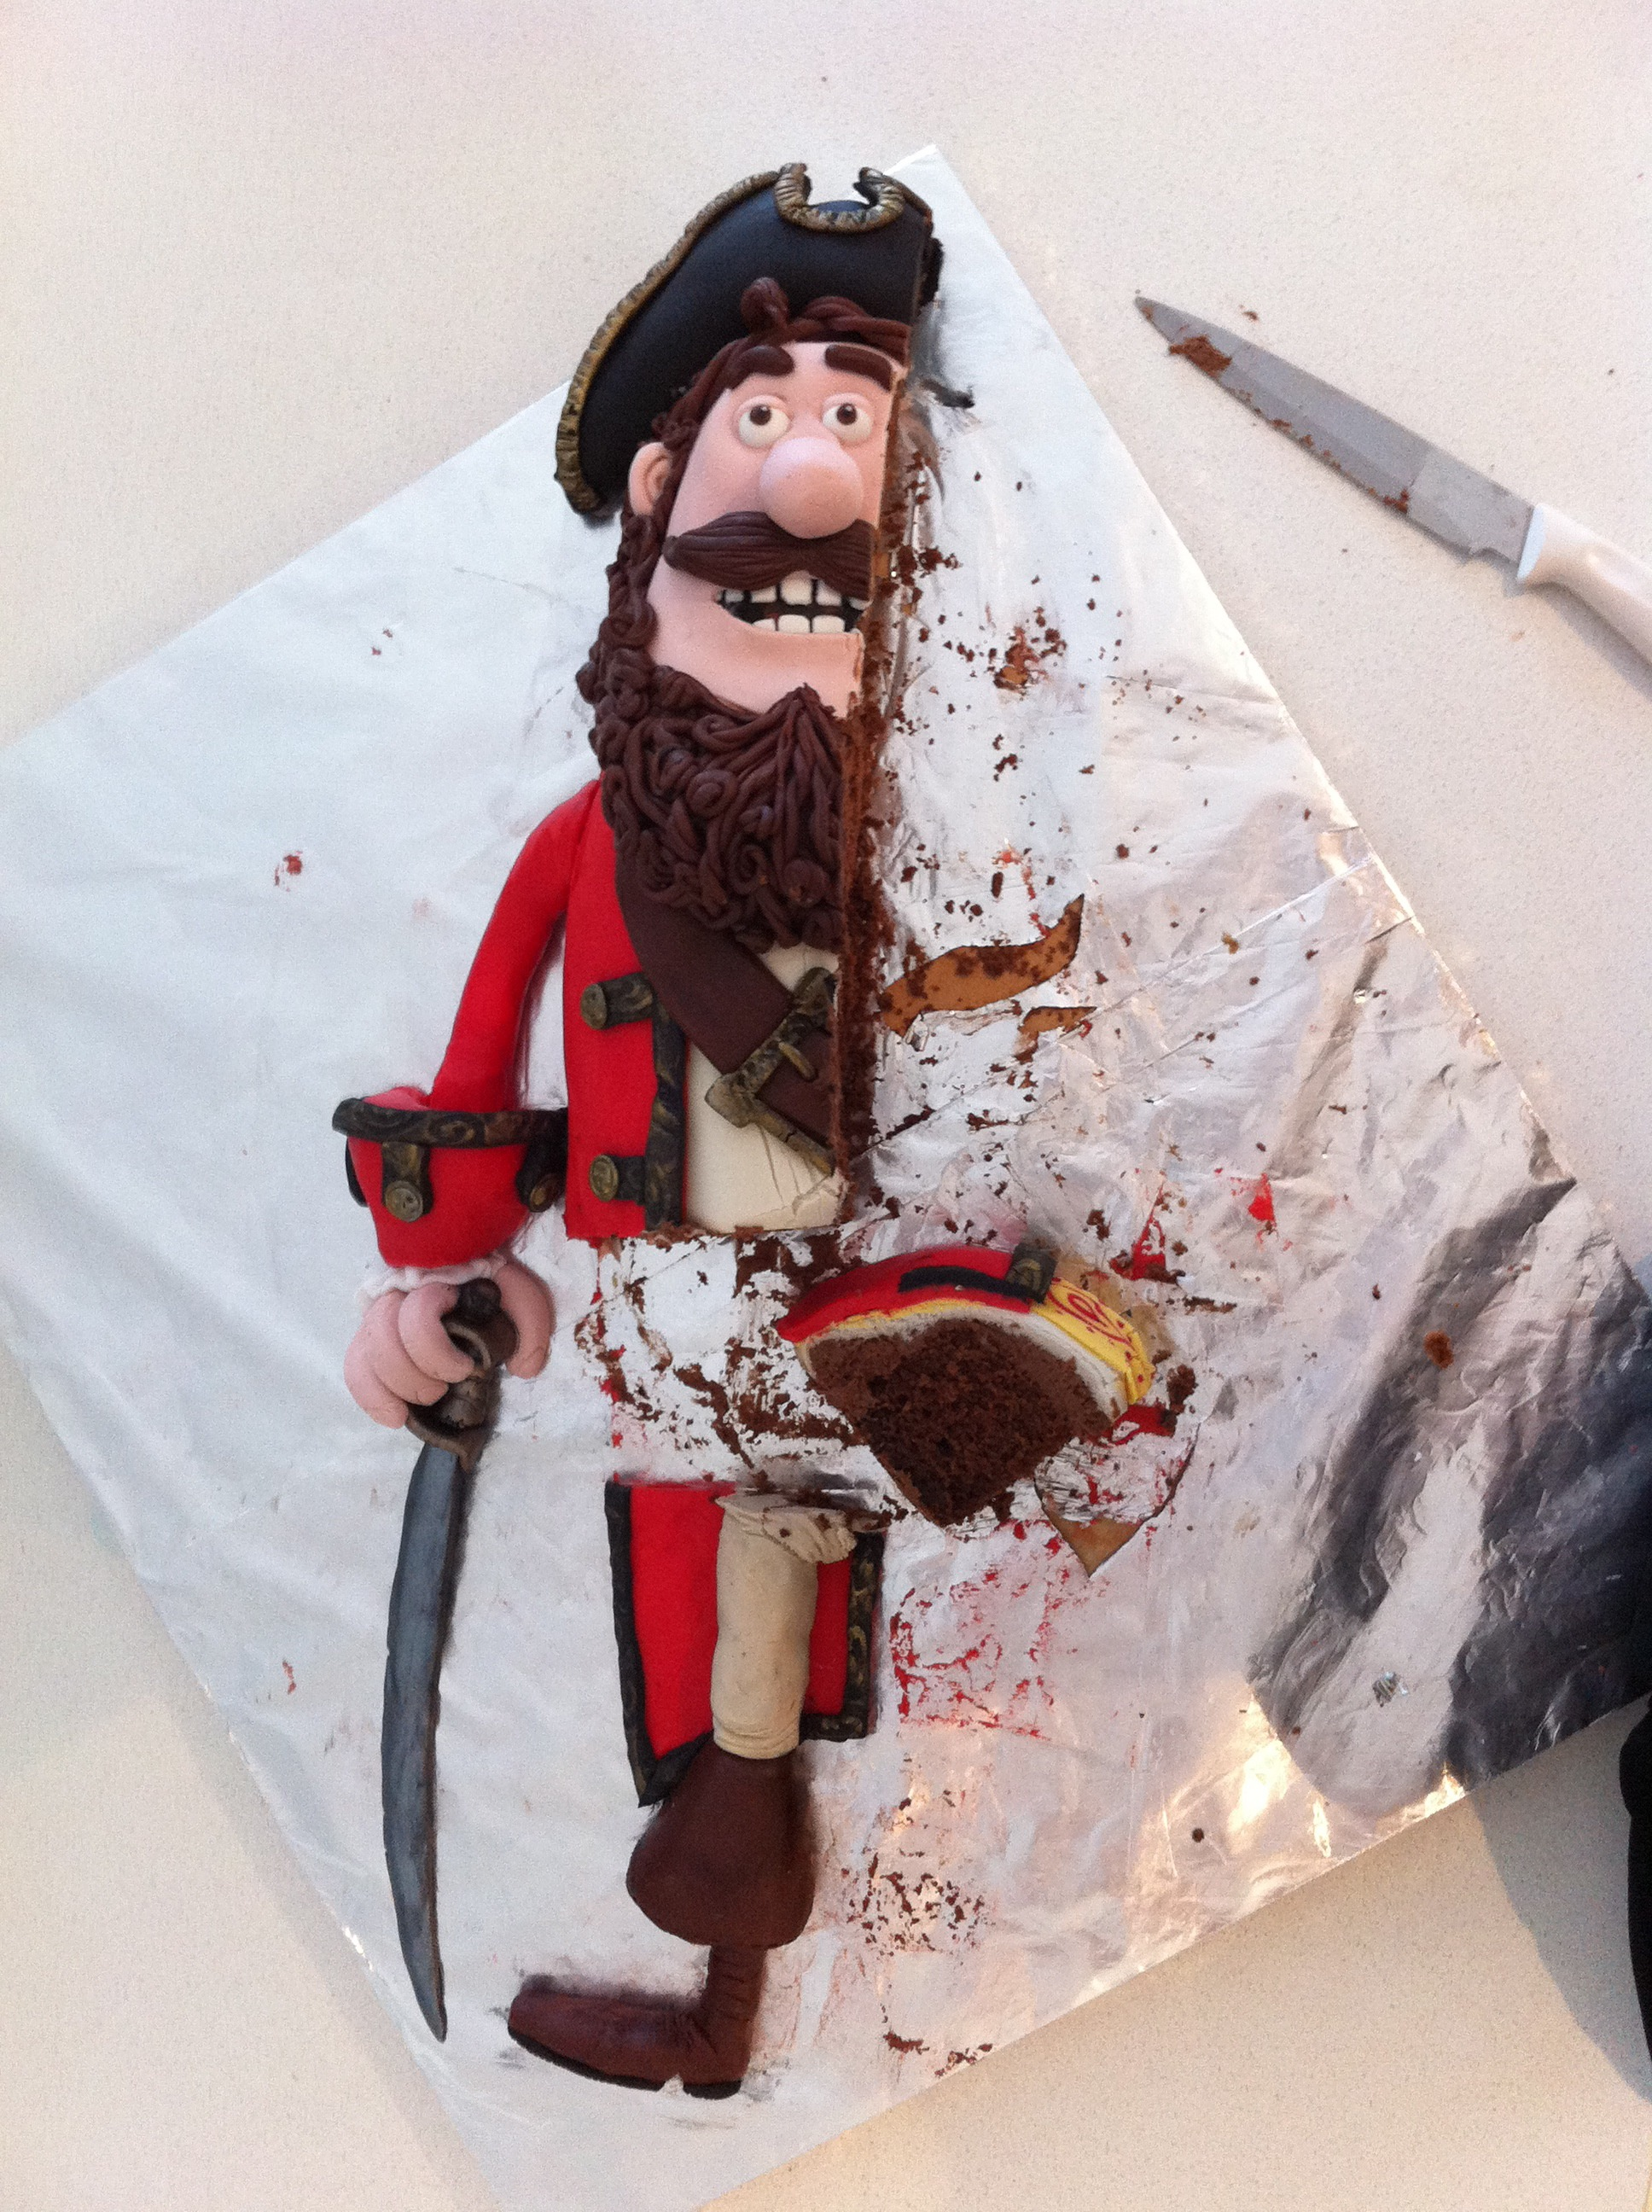 pirates band of misfits birthday cake pirate captain